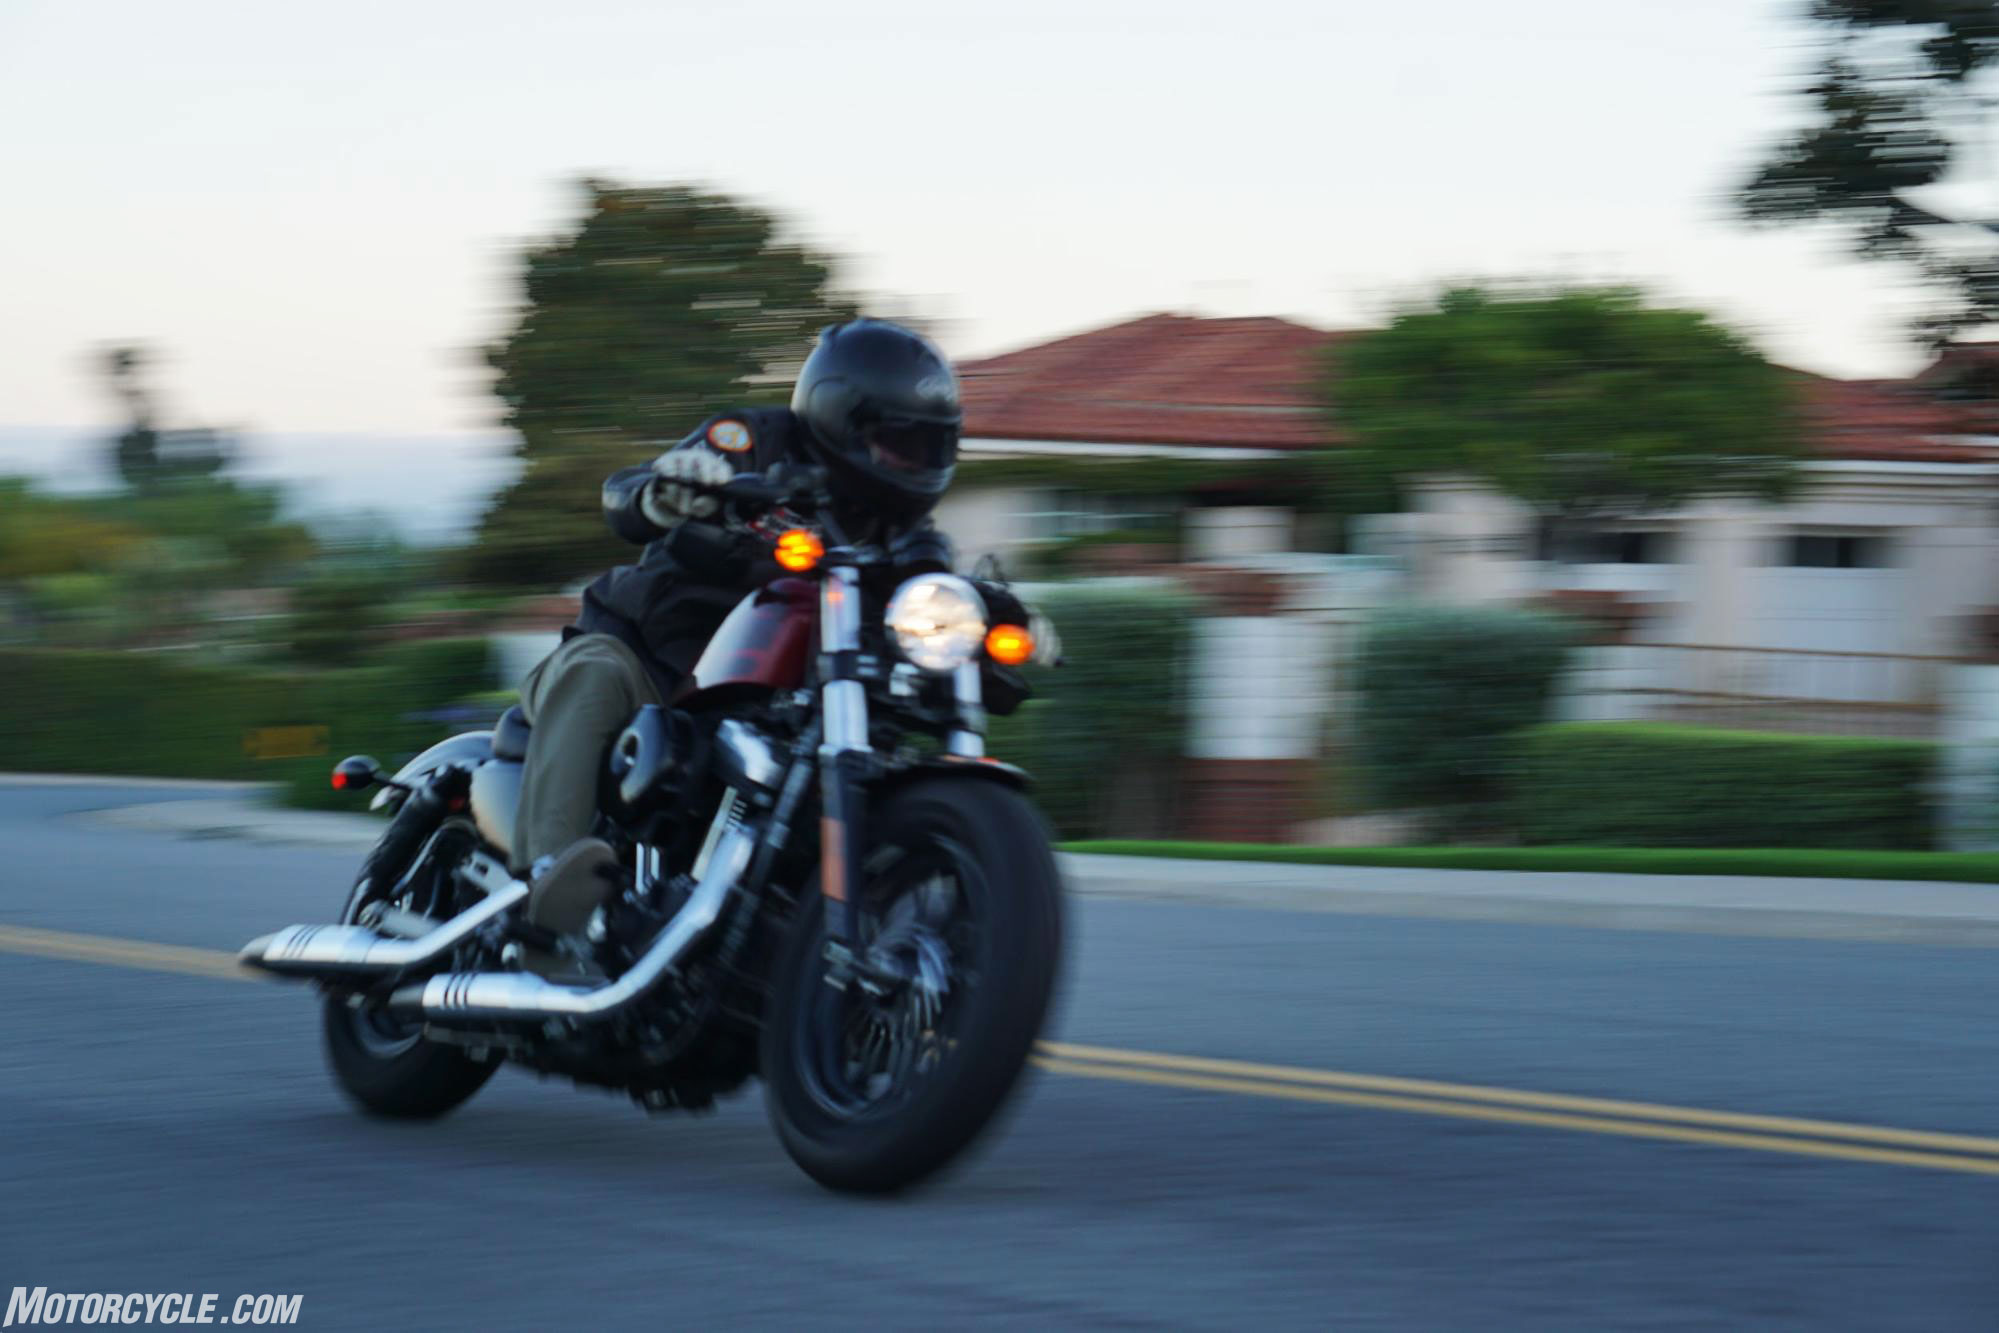 2017 Harley-Davidson Forty-Eight Sportster Review